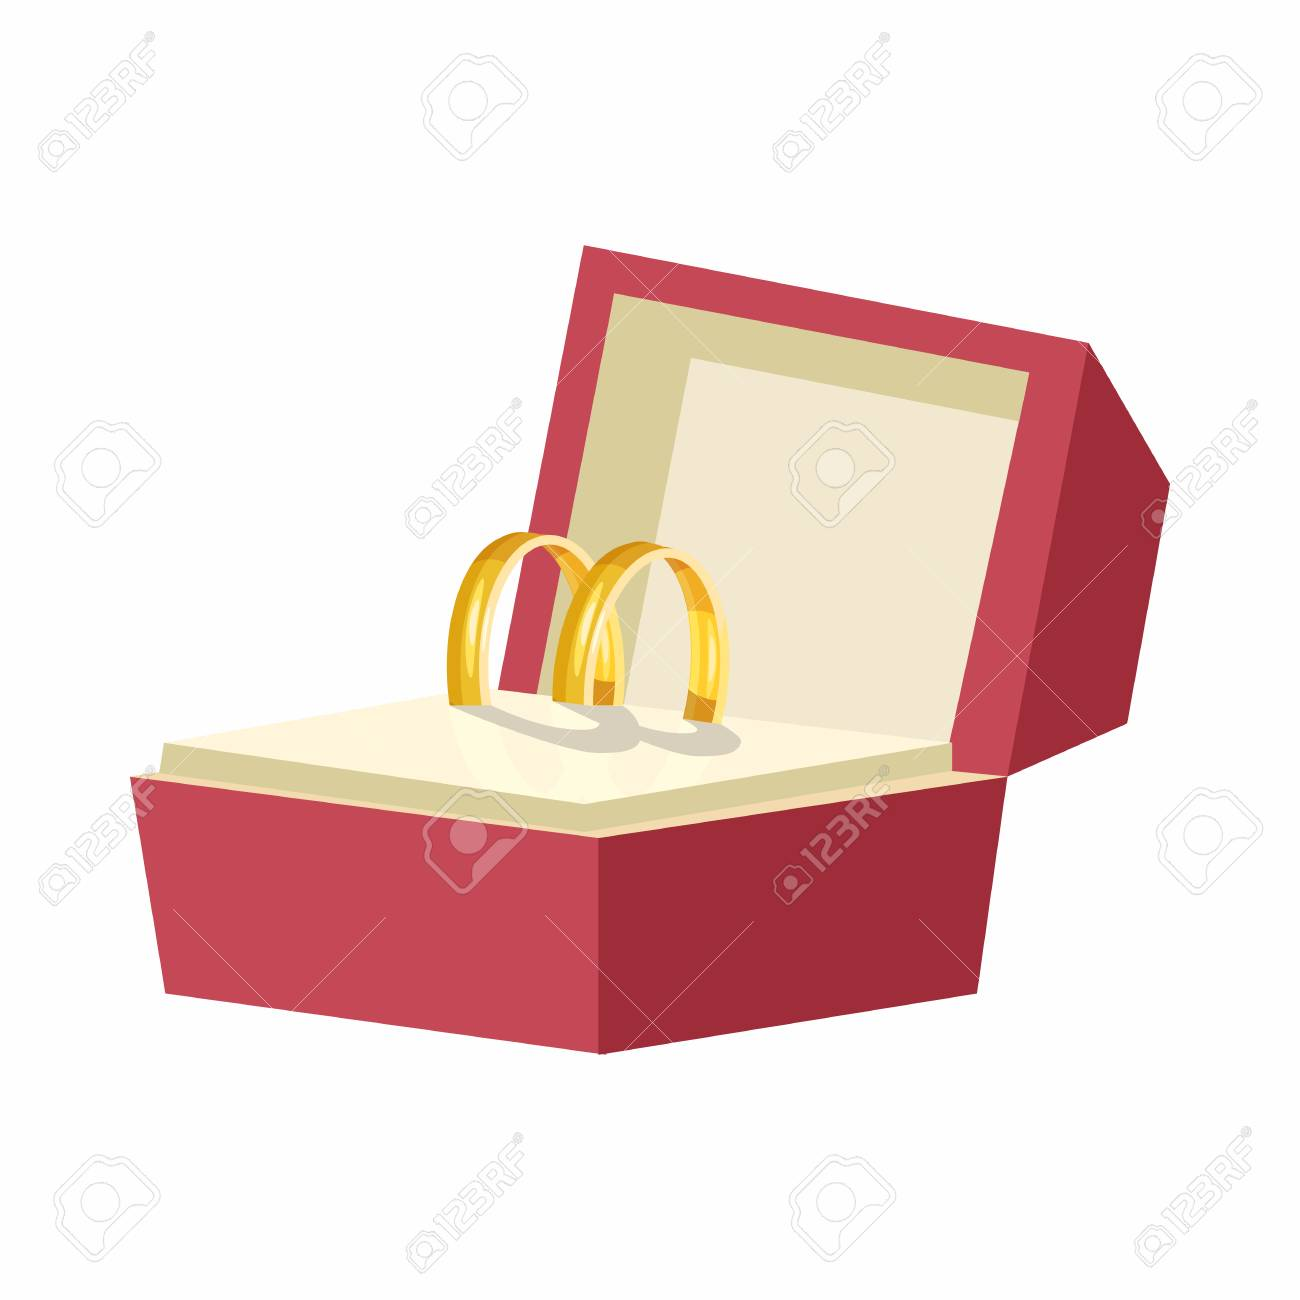 Wedding Rings In A Red Box Icon In Cartoon Style On A White